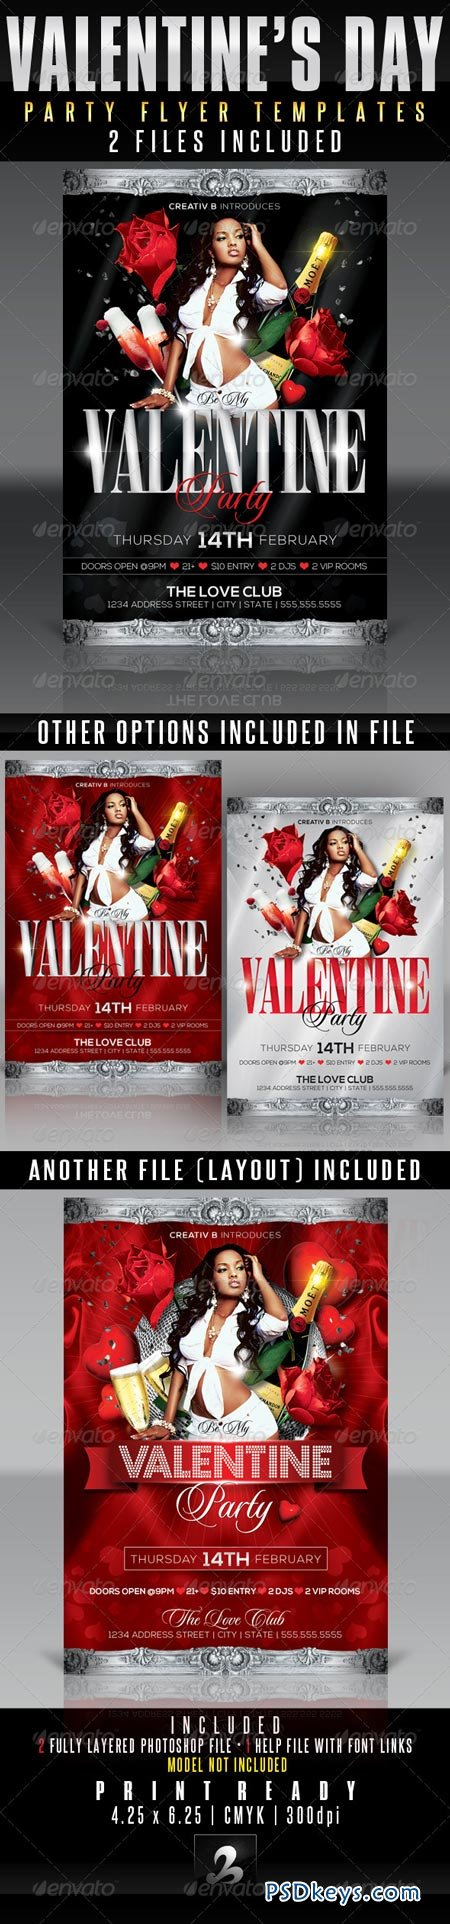 Valentine's Day Party Flyer Templates 3802576